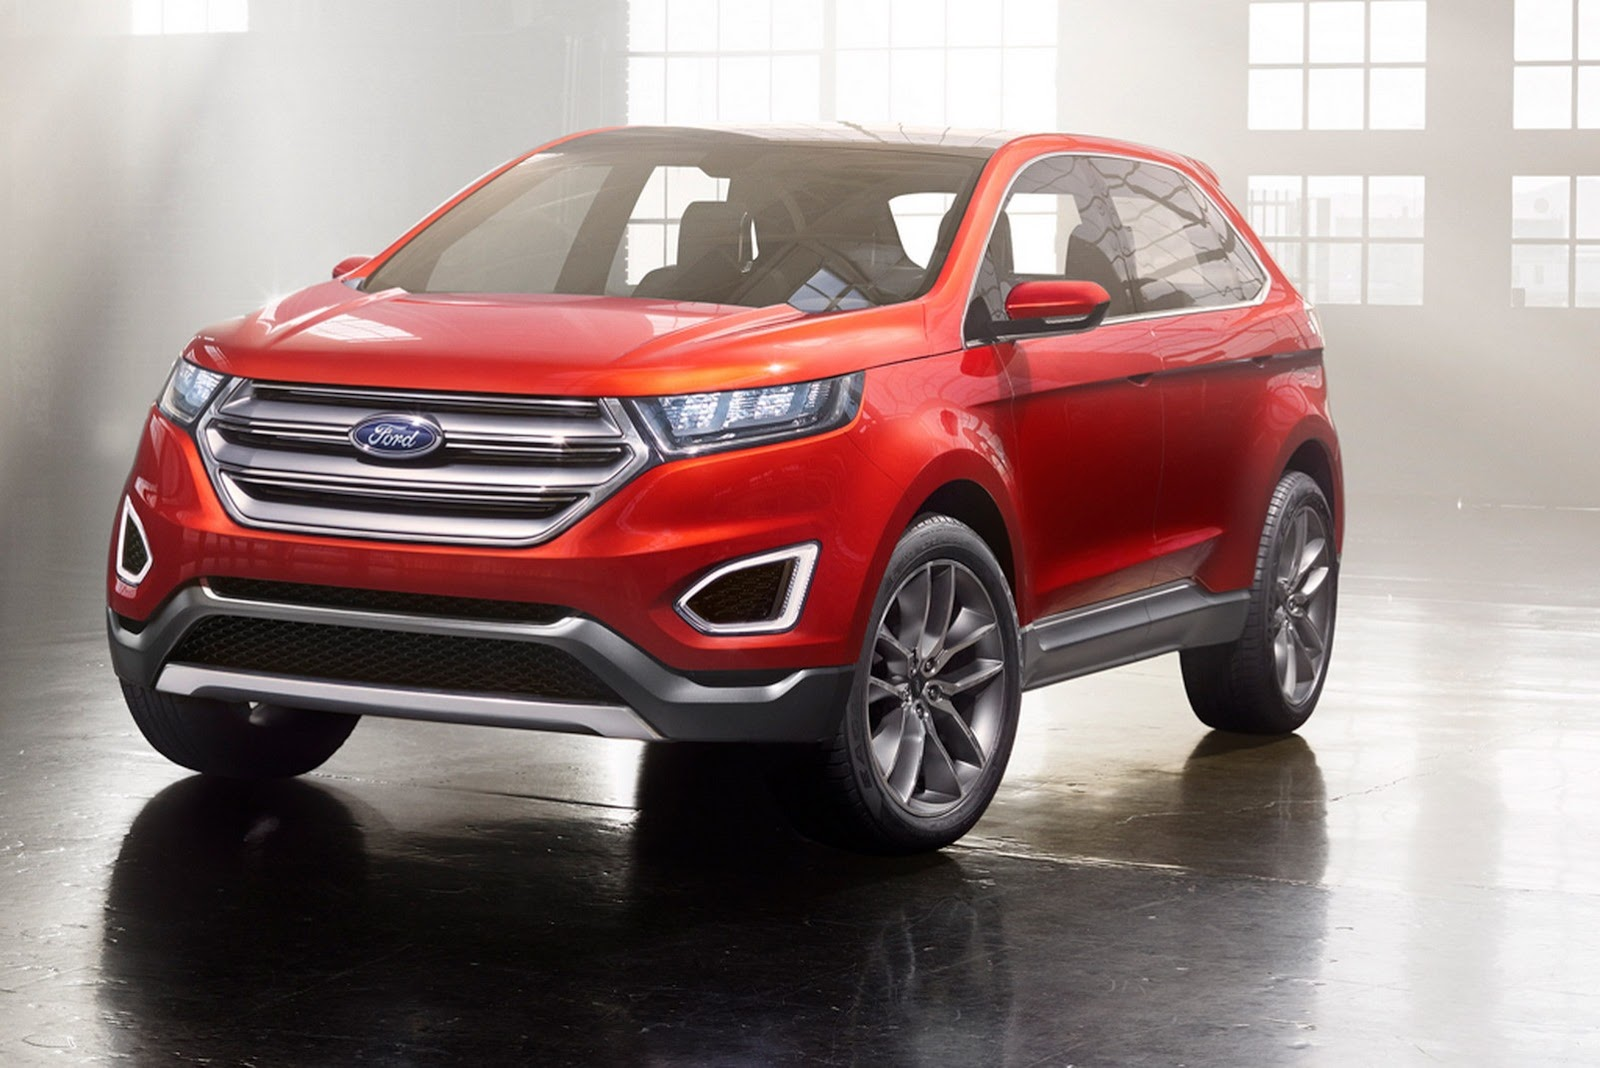 Havill Spoerl Ford >> The Ford Connection The 2015 Ford Edge Features Cutting